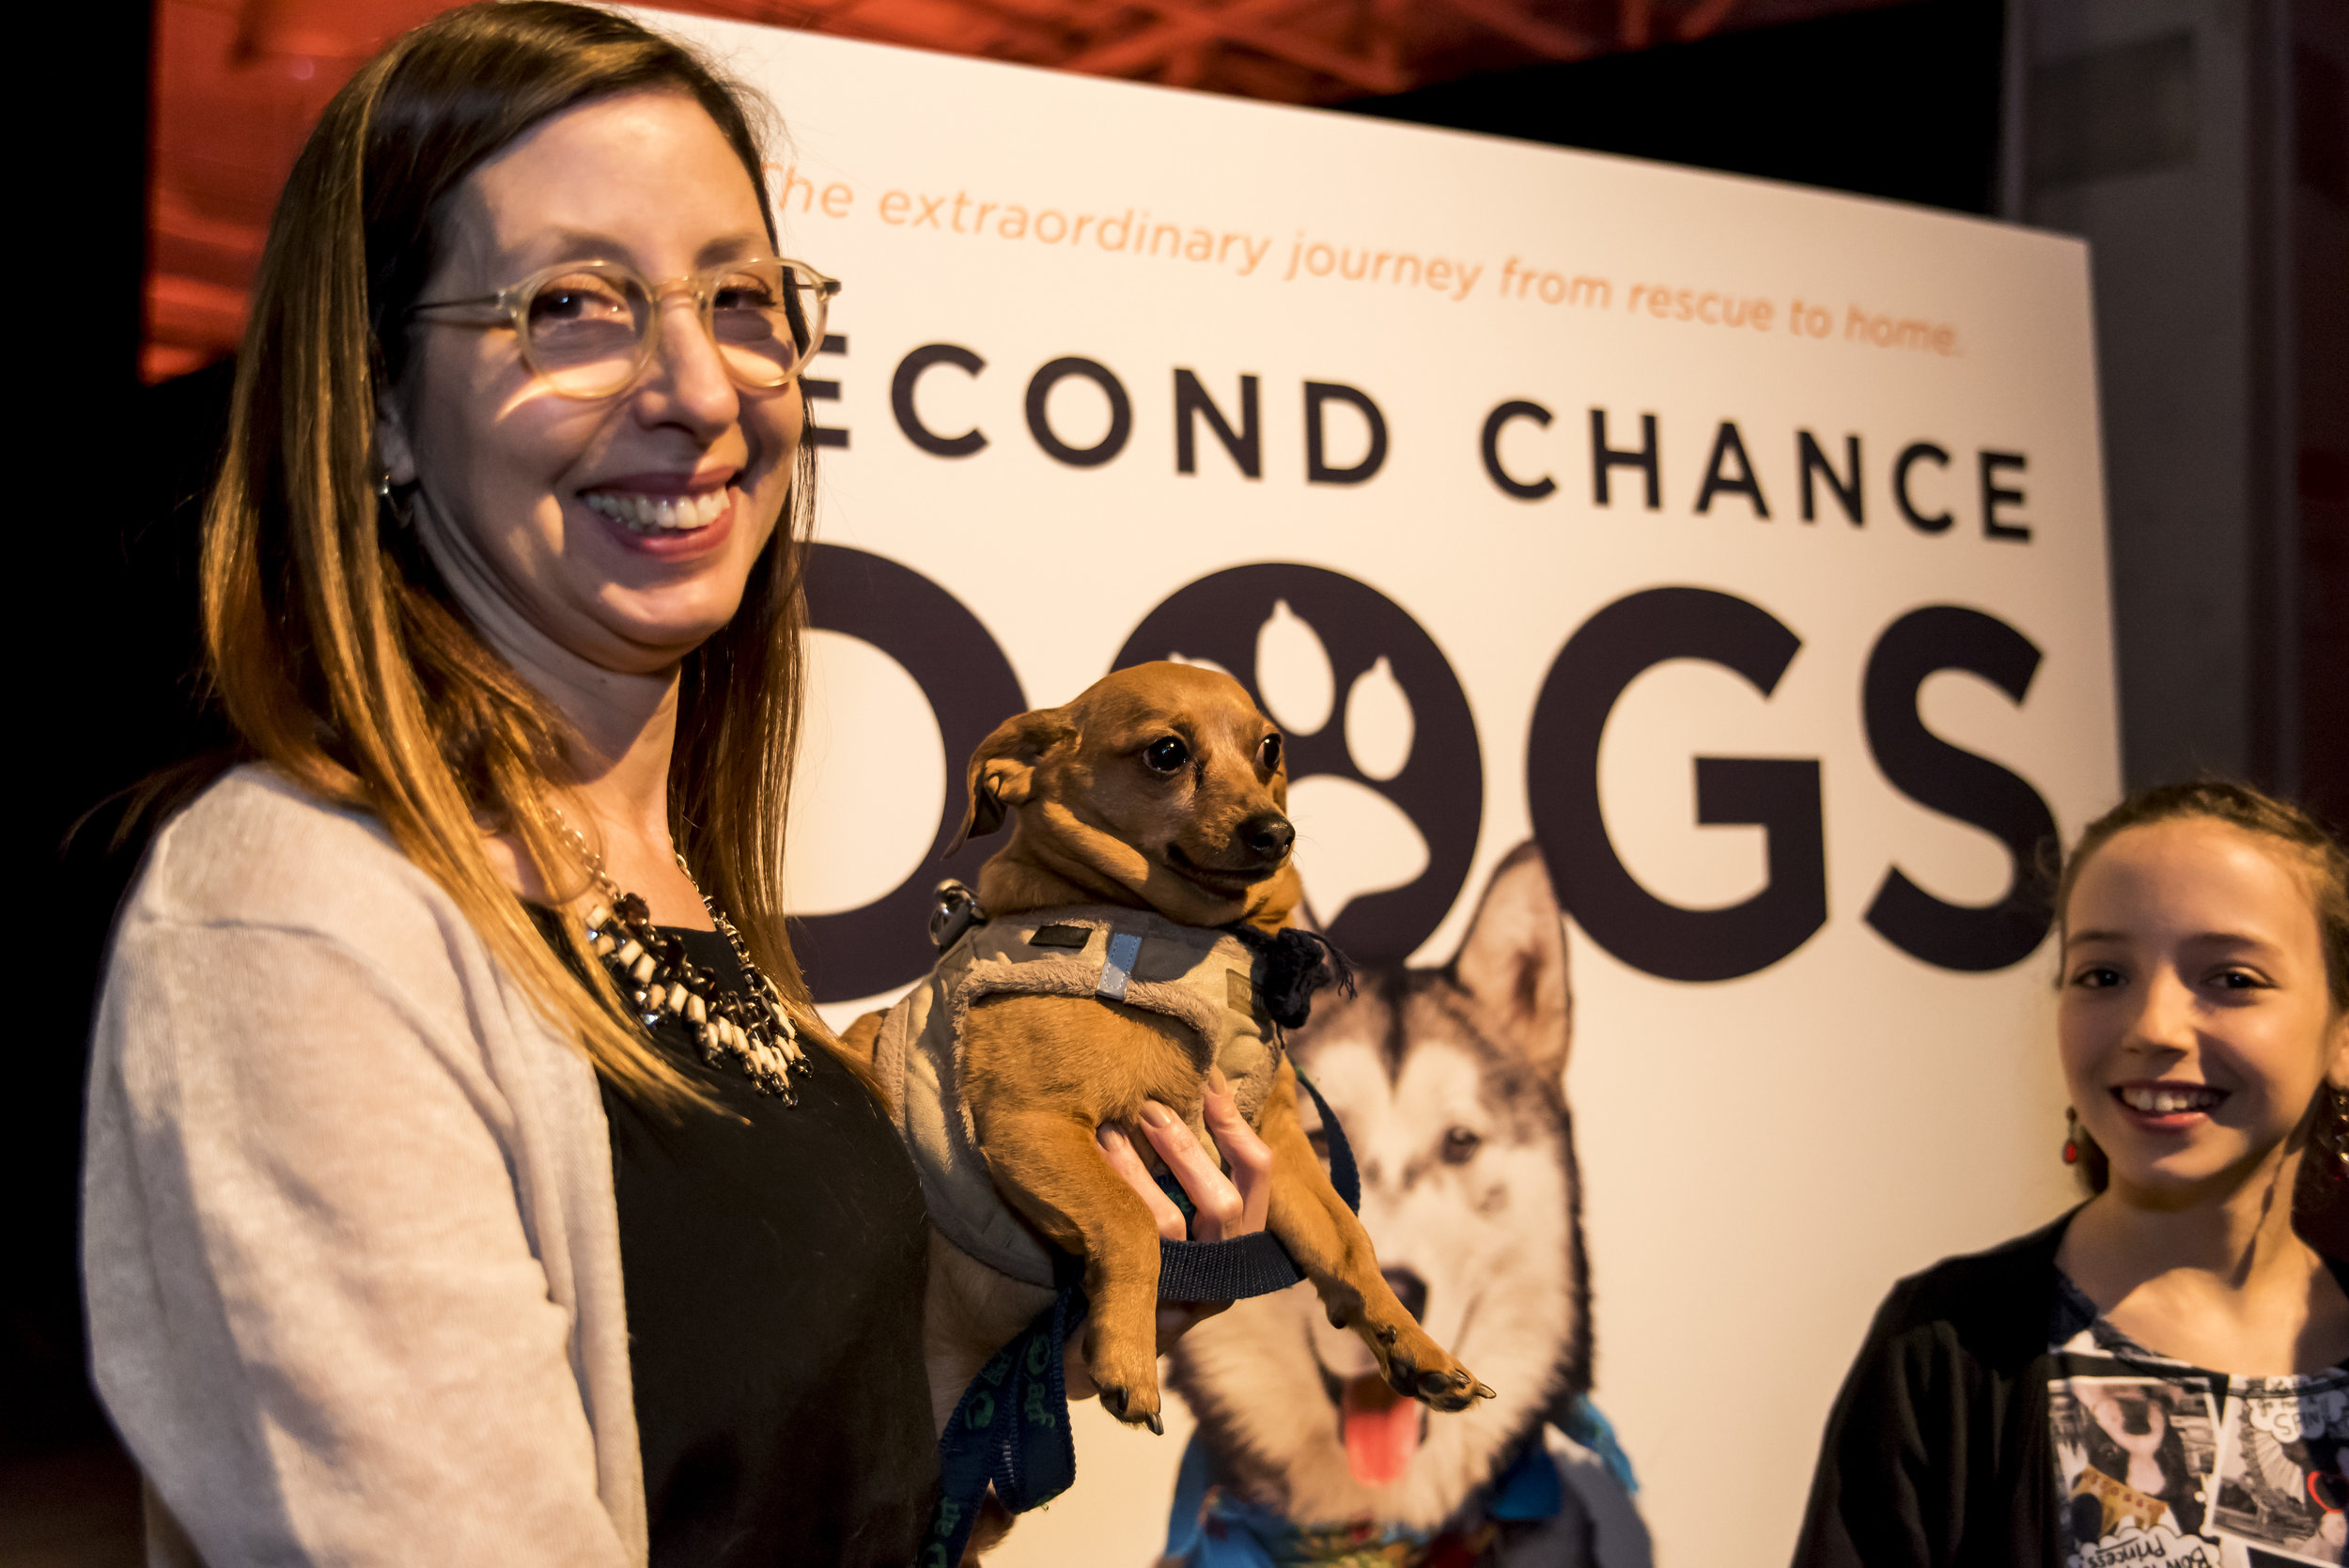 Media_150th_Second-Chance-Dogs-Screening_2016Apr10_0096.jpg